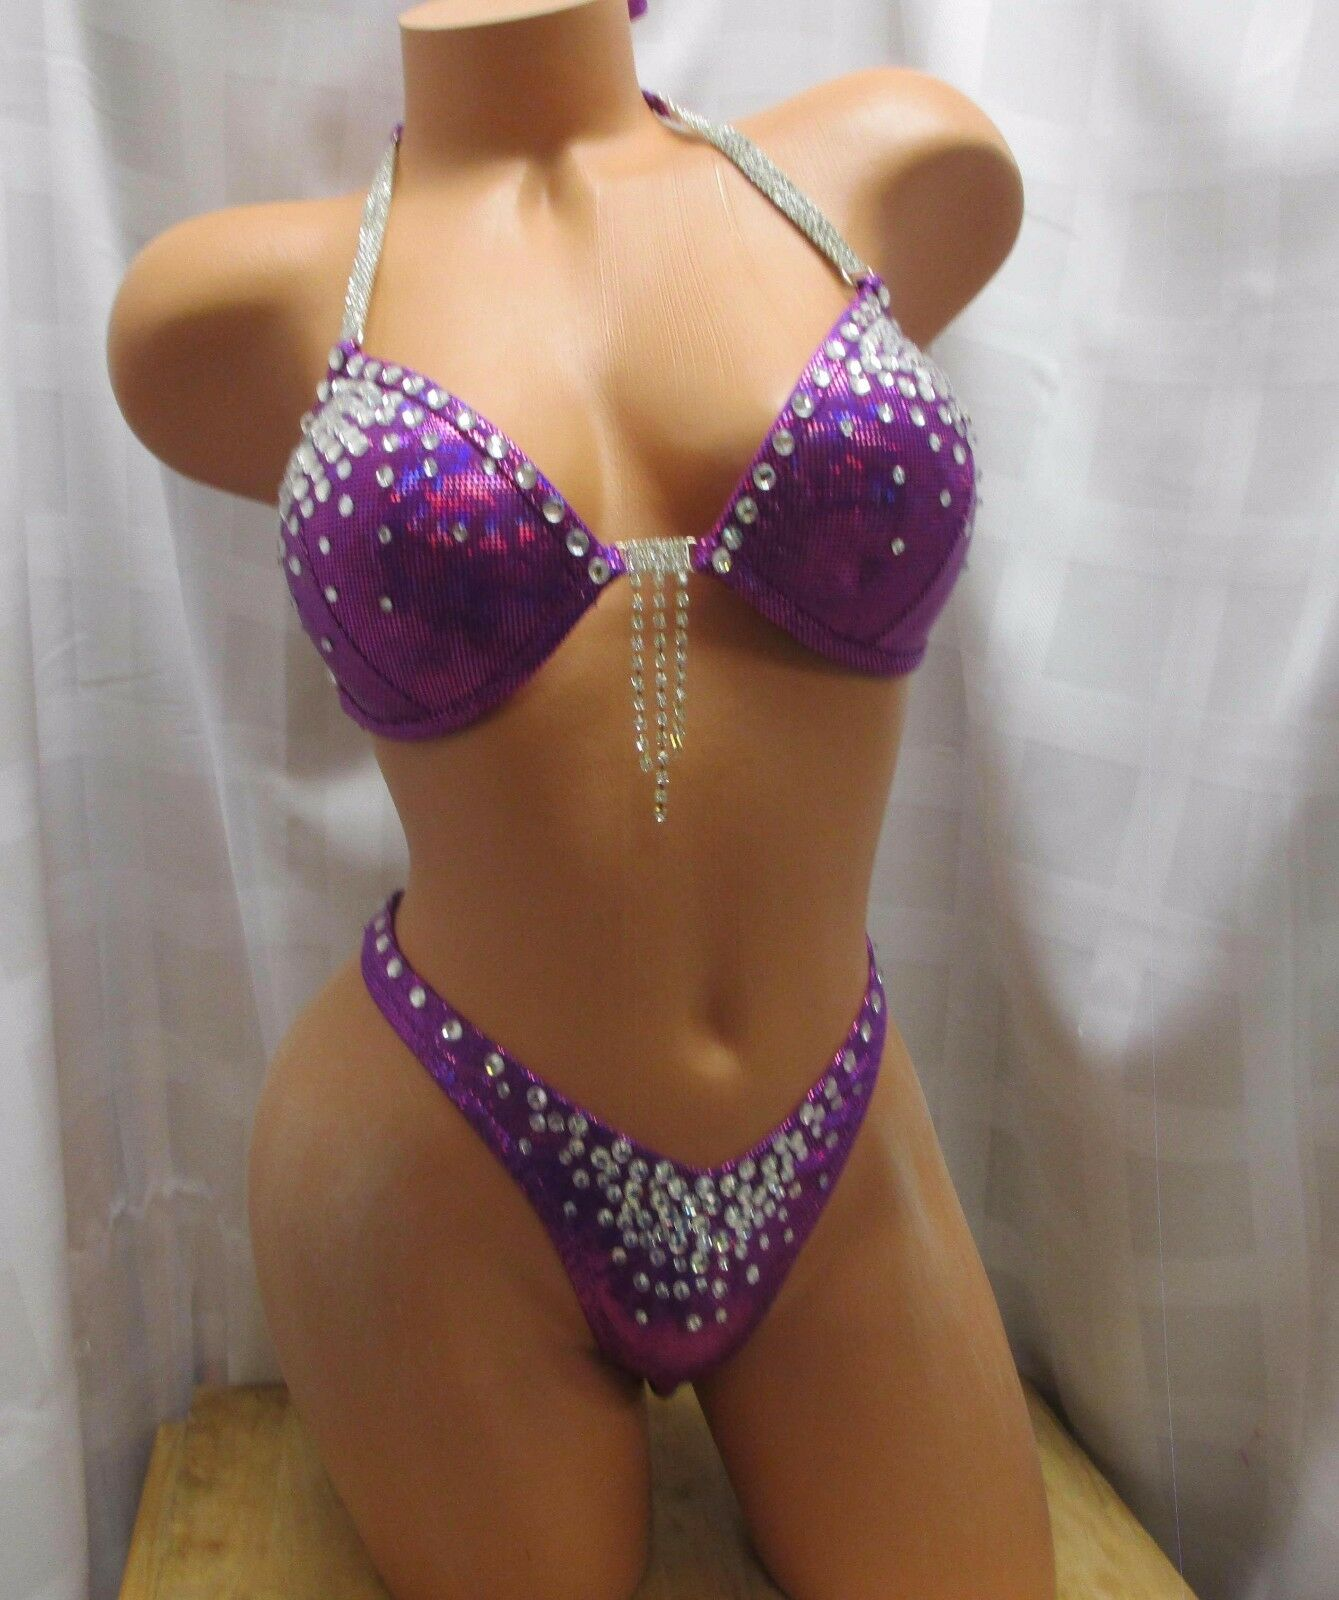 COMPETITION FITNESS FIGURE POSING SUIT PURPLE HOLOGRAM CRYSTAL RHINESTONES WOW